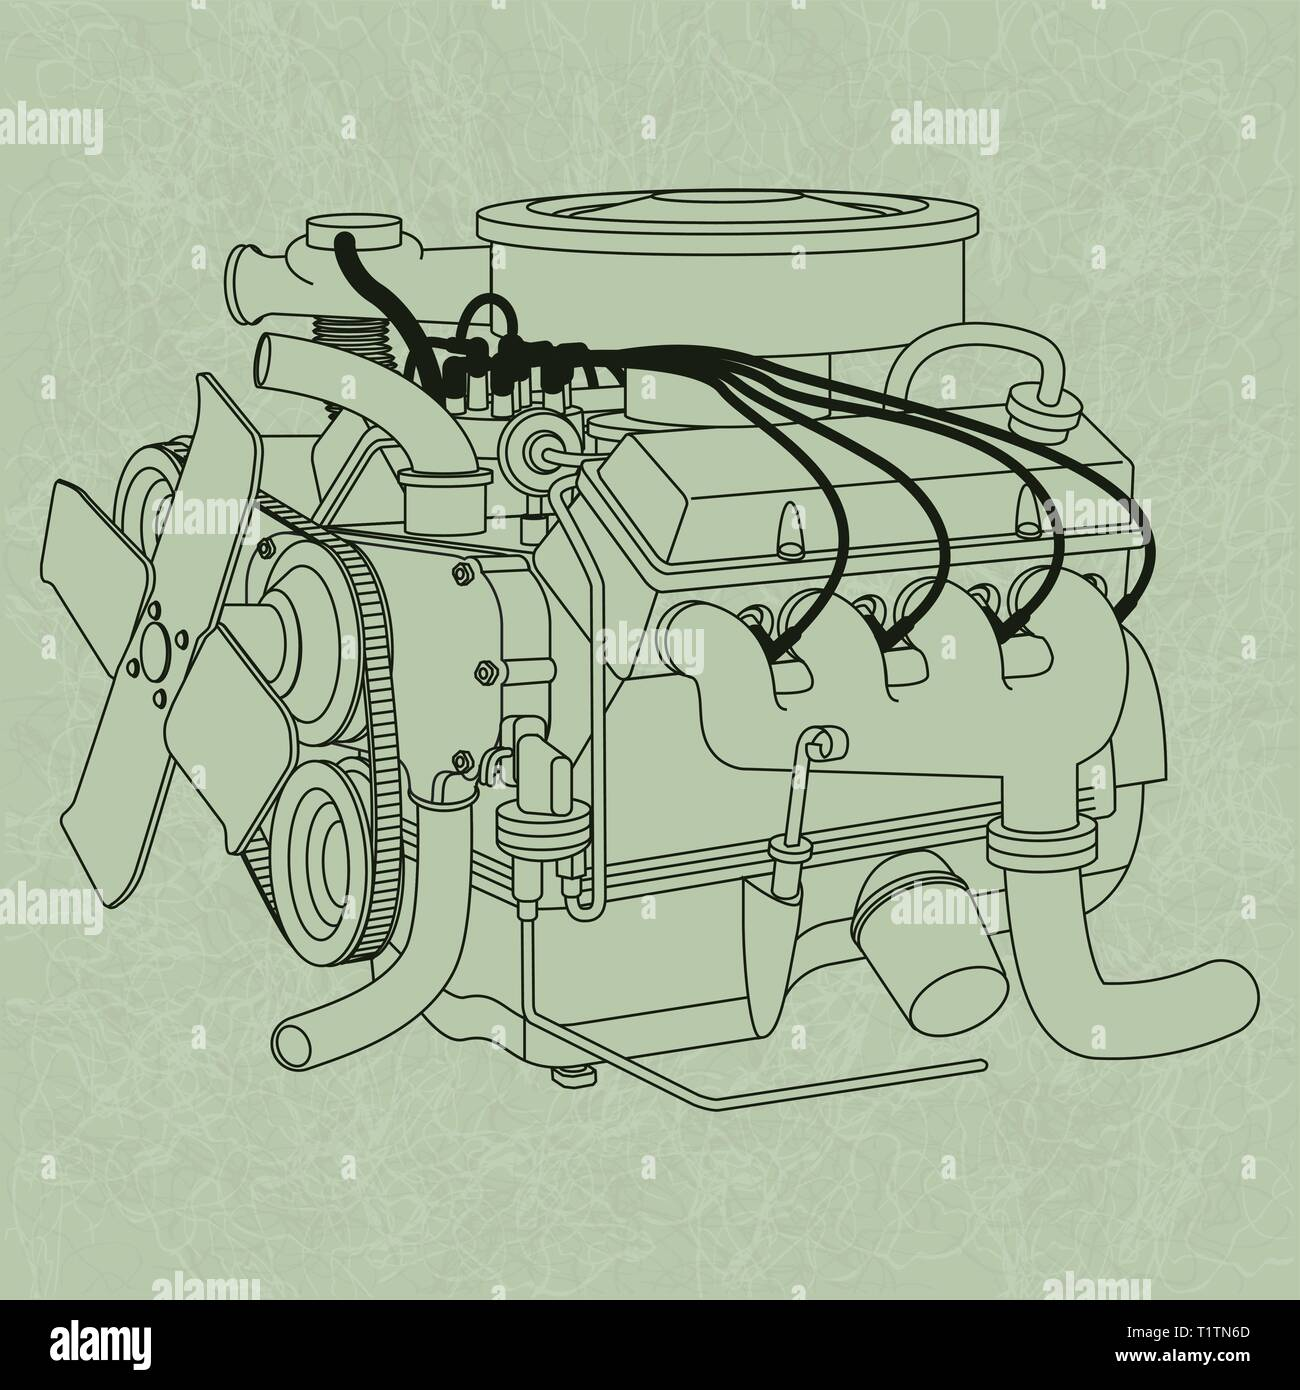 hight resolution of car engine diagram stock photos u0026 car engine diagram stock images